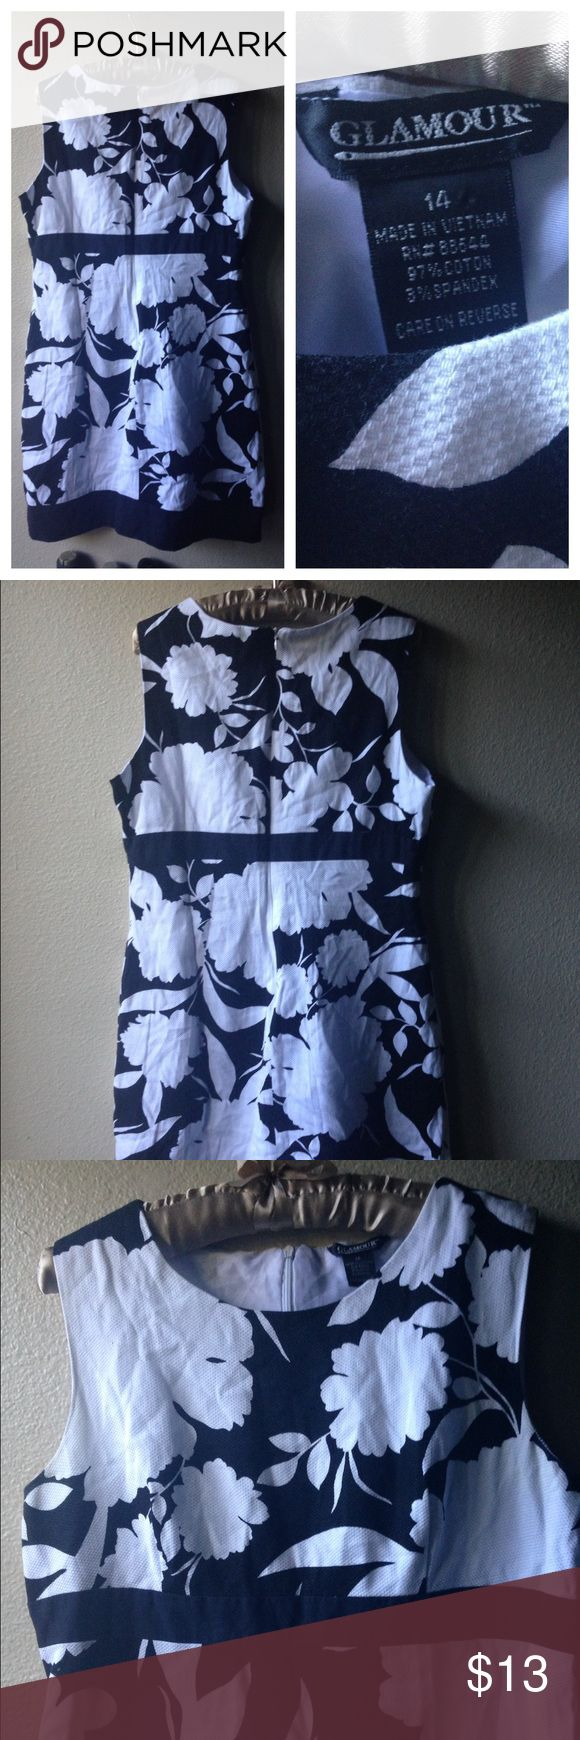 Floral dress size 14 Nice sheath dress. Fully lined, doesn't stretch. Zips in the back , good condition glamour Dresses